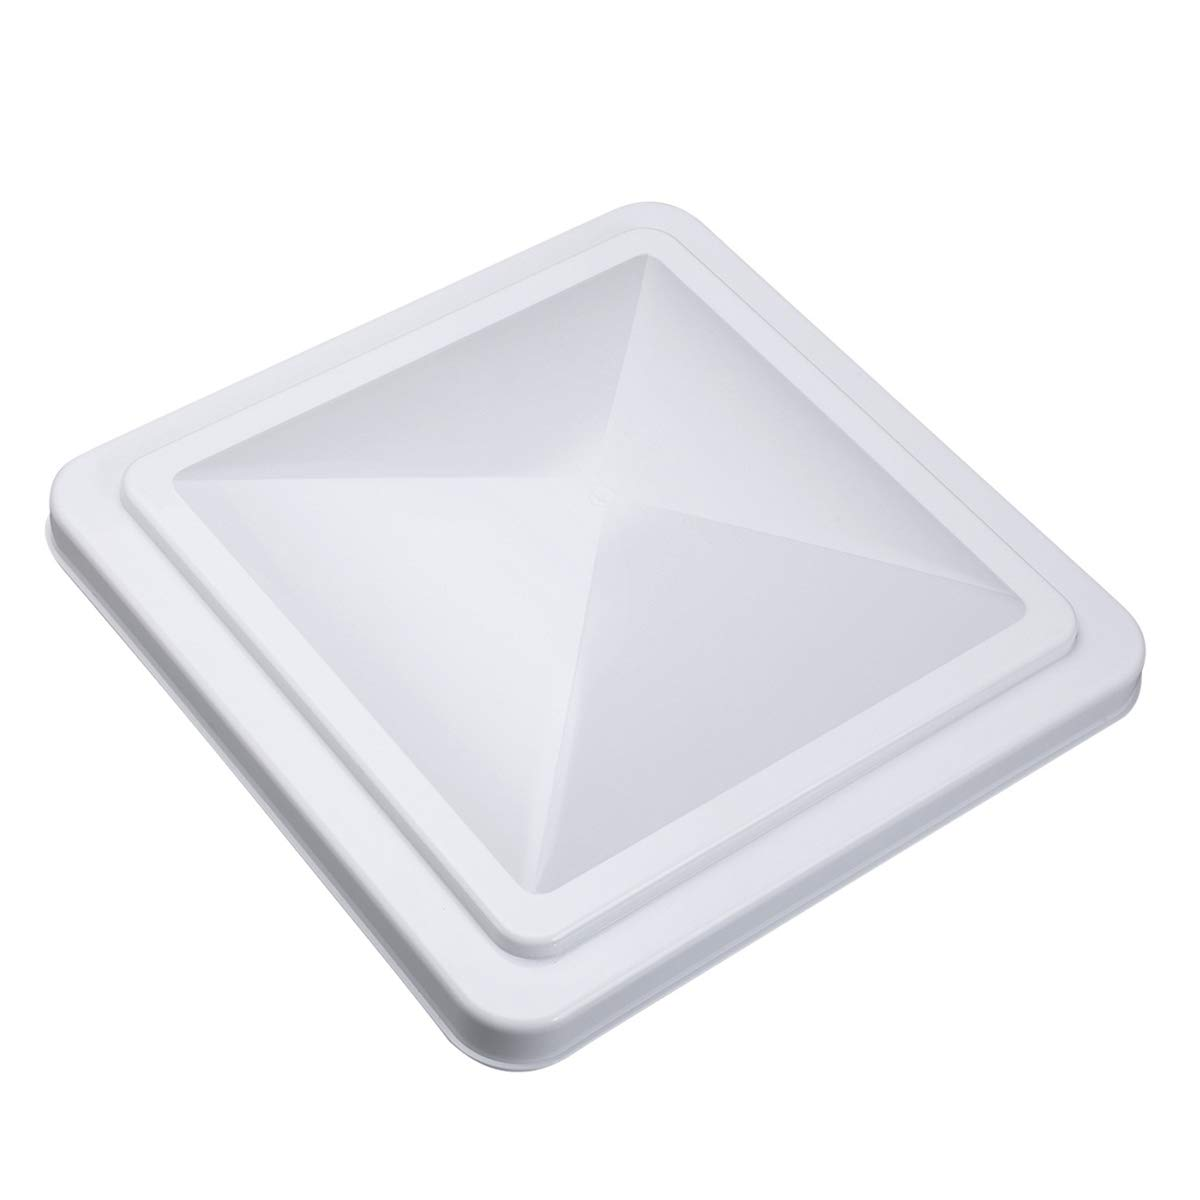 VETOMILE 14''x 14'' RV Roof Vent Cover White Universal Replacement Vent Lid for Camper Trailer Motorhome by VETOMILE